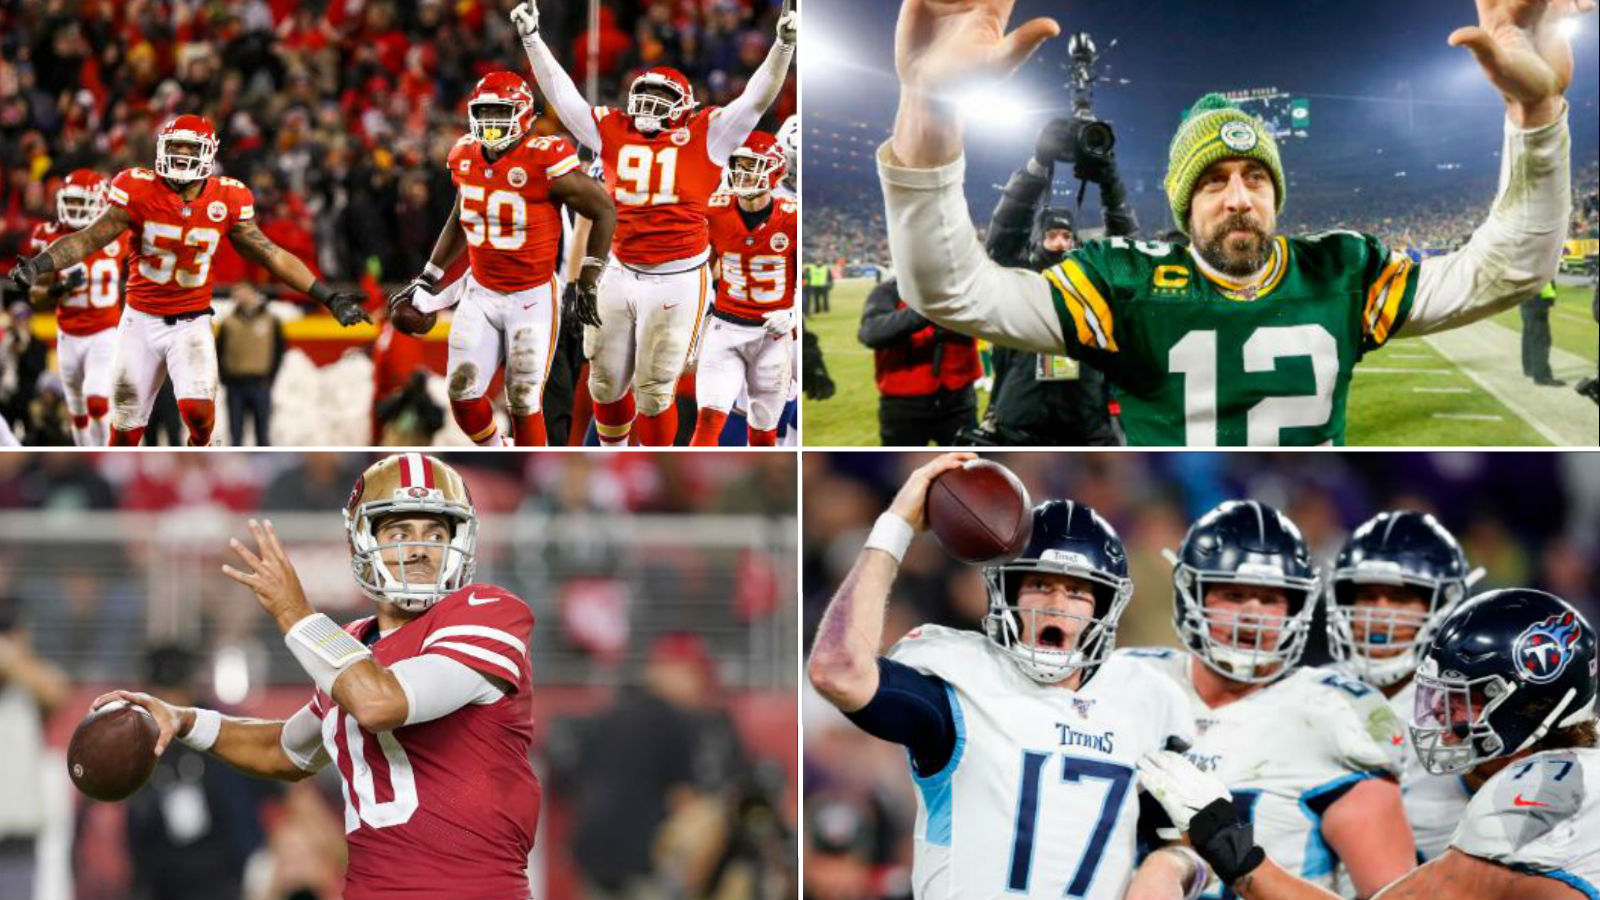 Four NFL teams square off to see who will play in Super Bowl LIV